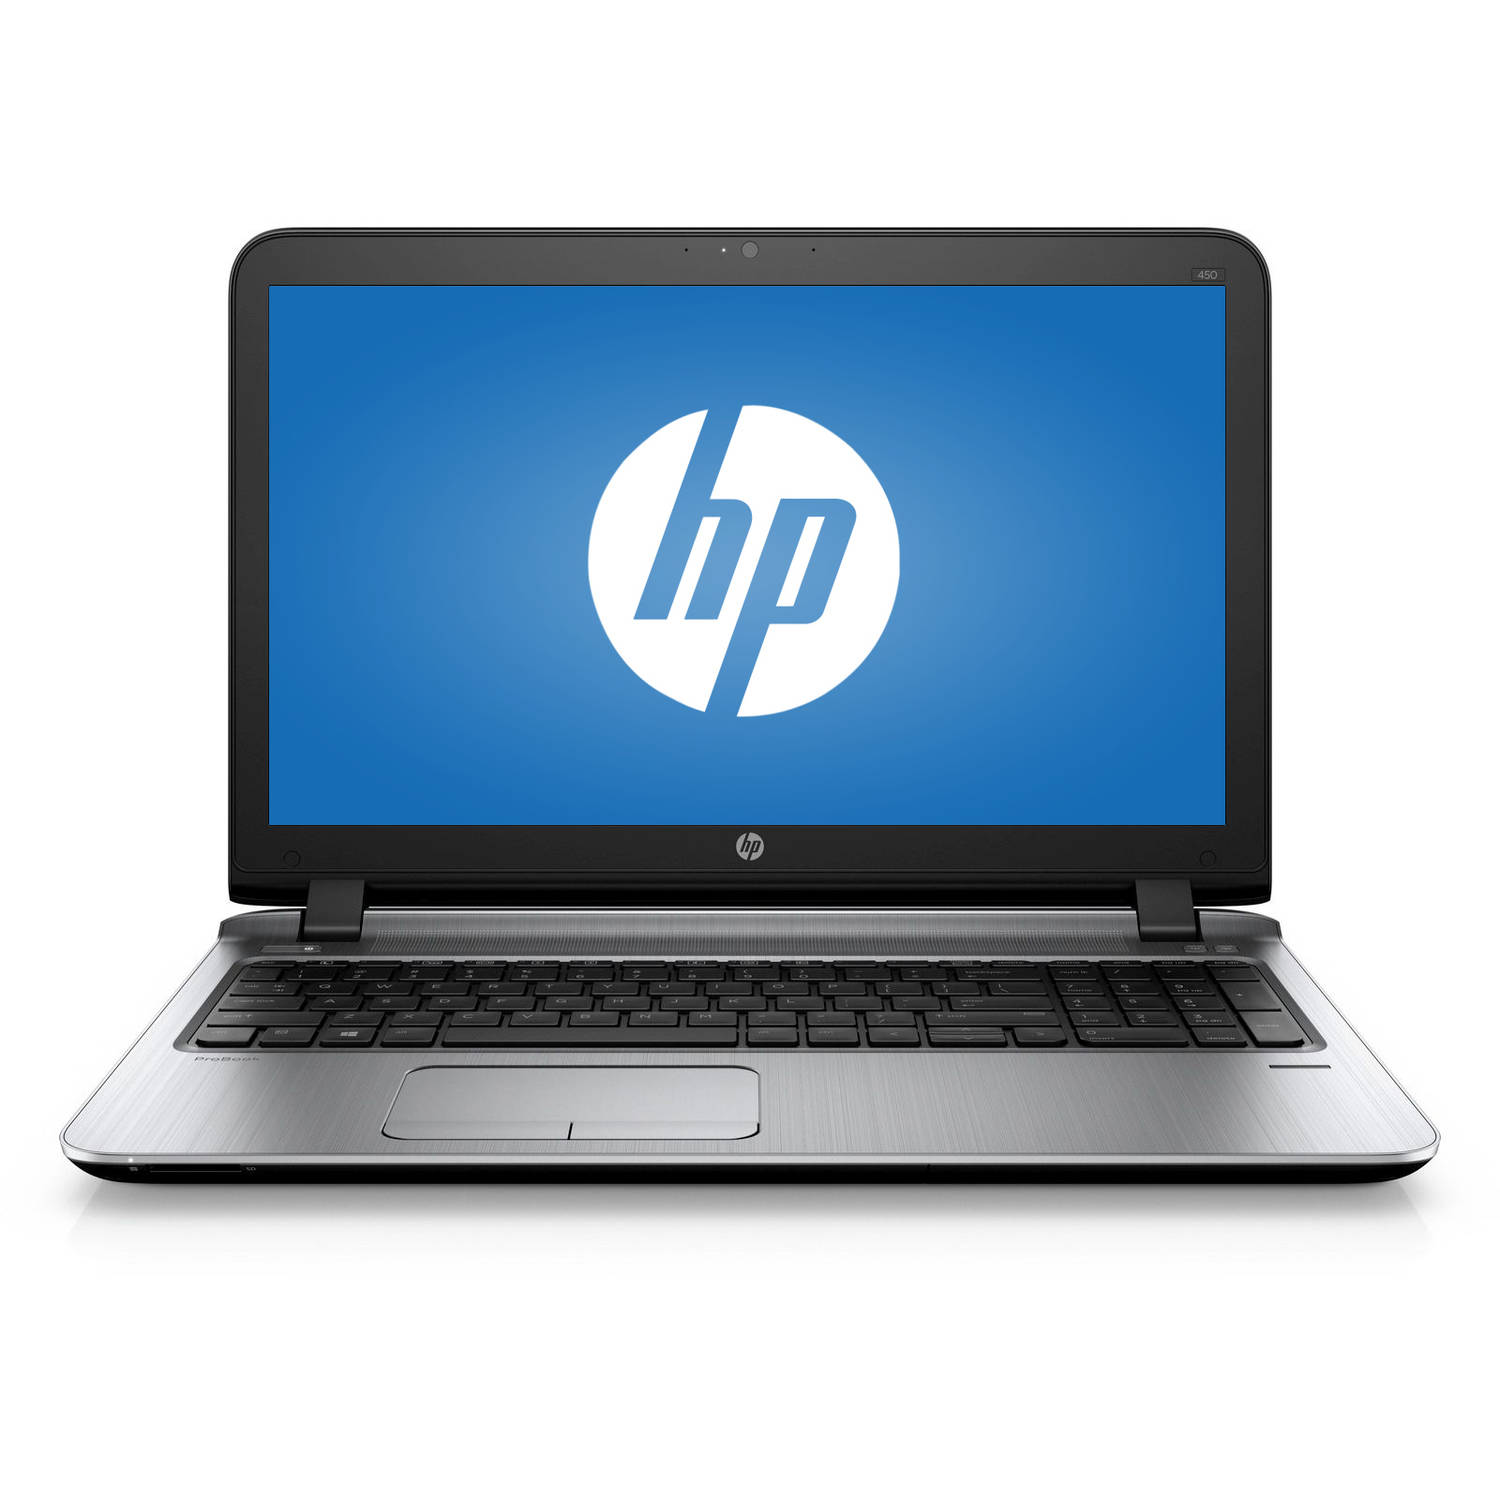 """HP Business 15.6"""" ProBook 450 G3 T1B78UT Laptop PC with Intel Core i5-6200U Processor, 8GB Memory, touch screen, 128GB Solid State Drive and Windows 10 Pro"""